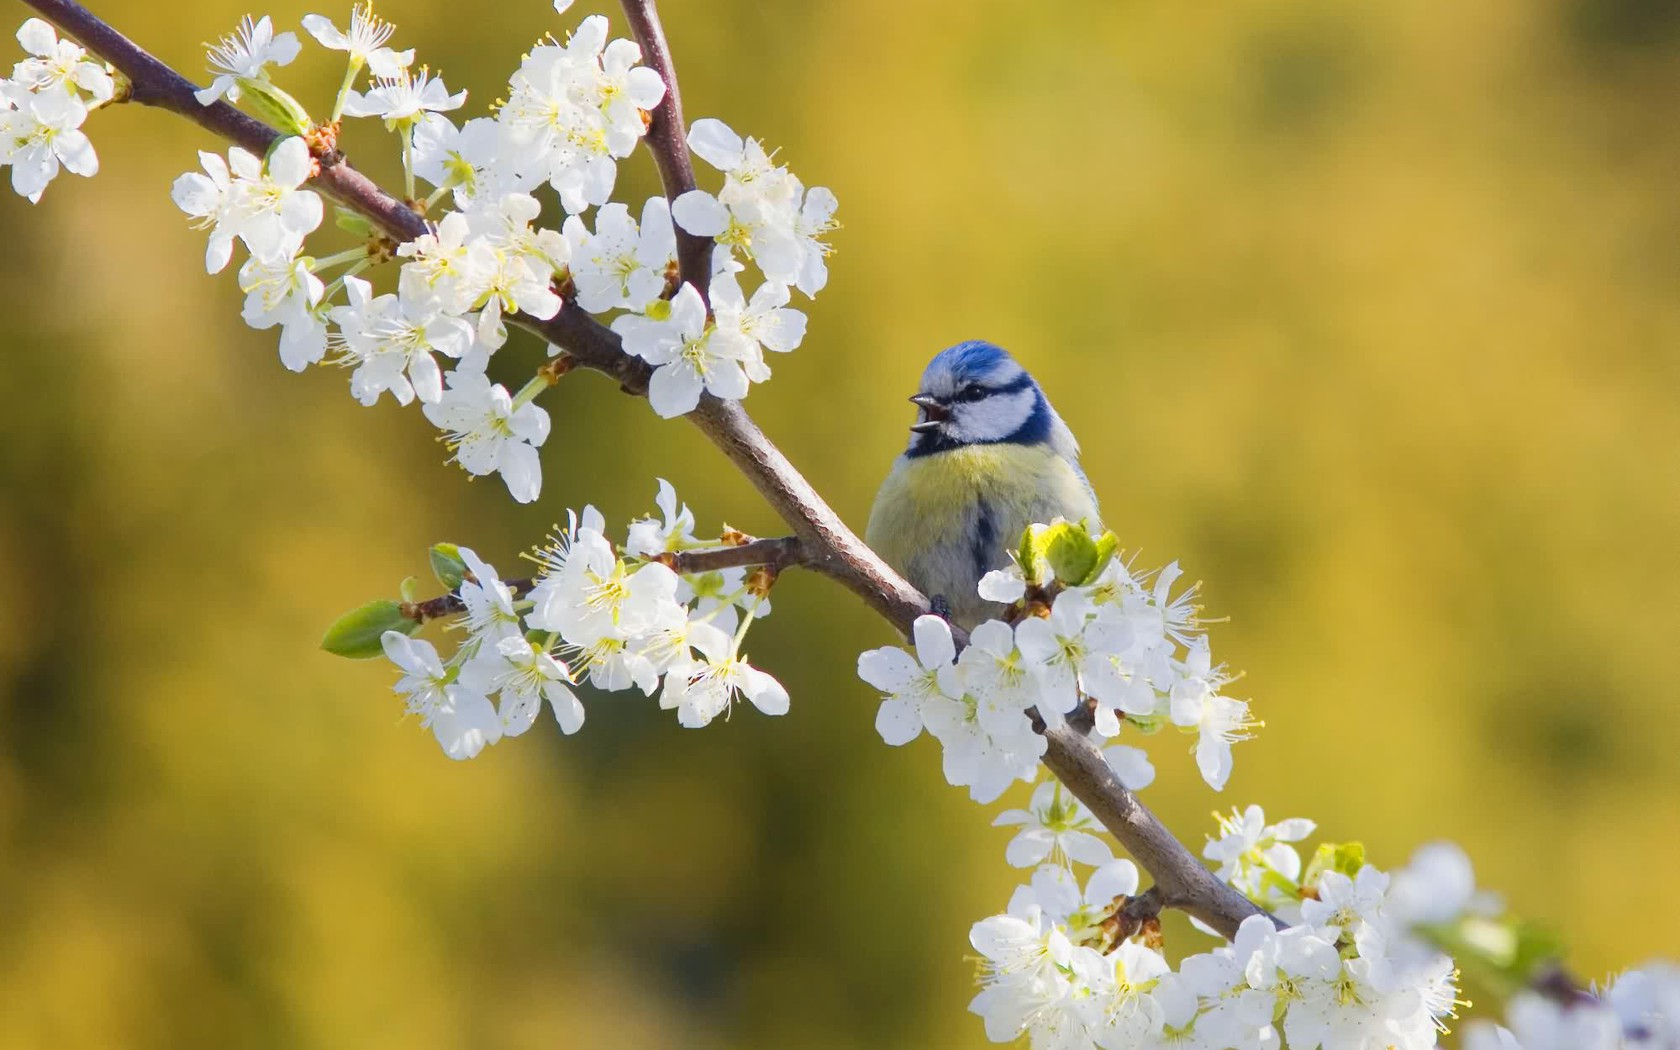 Bird on a branch of the cherry blossoms